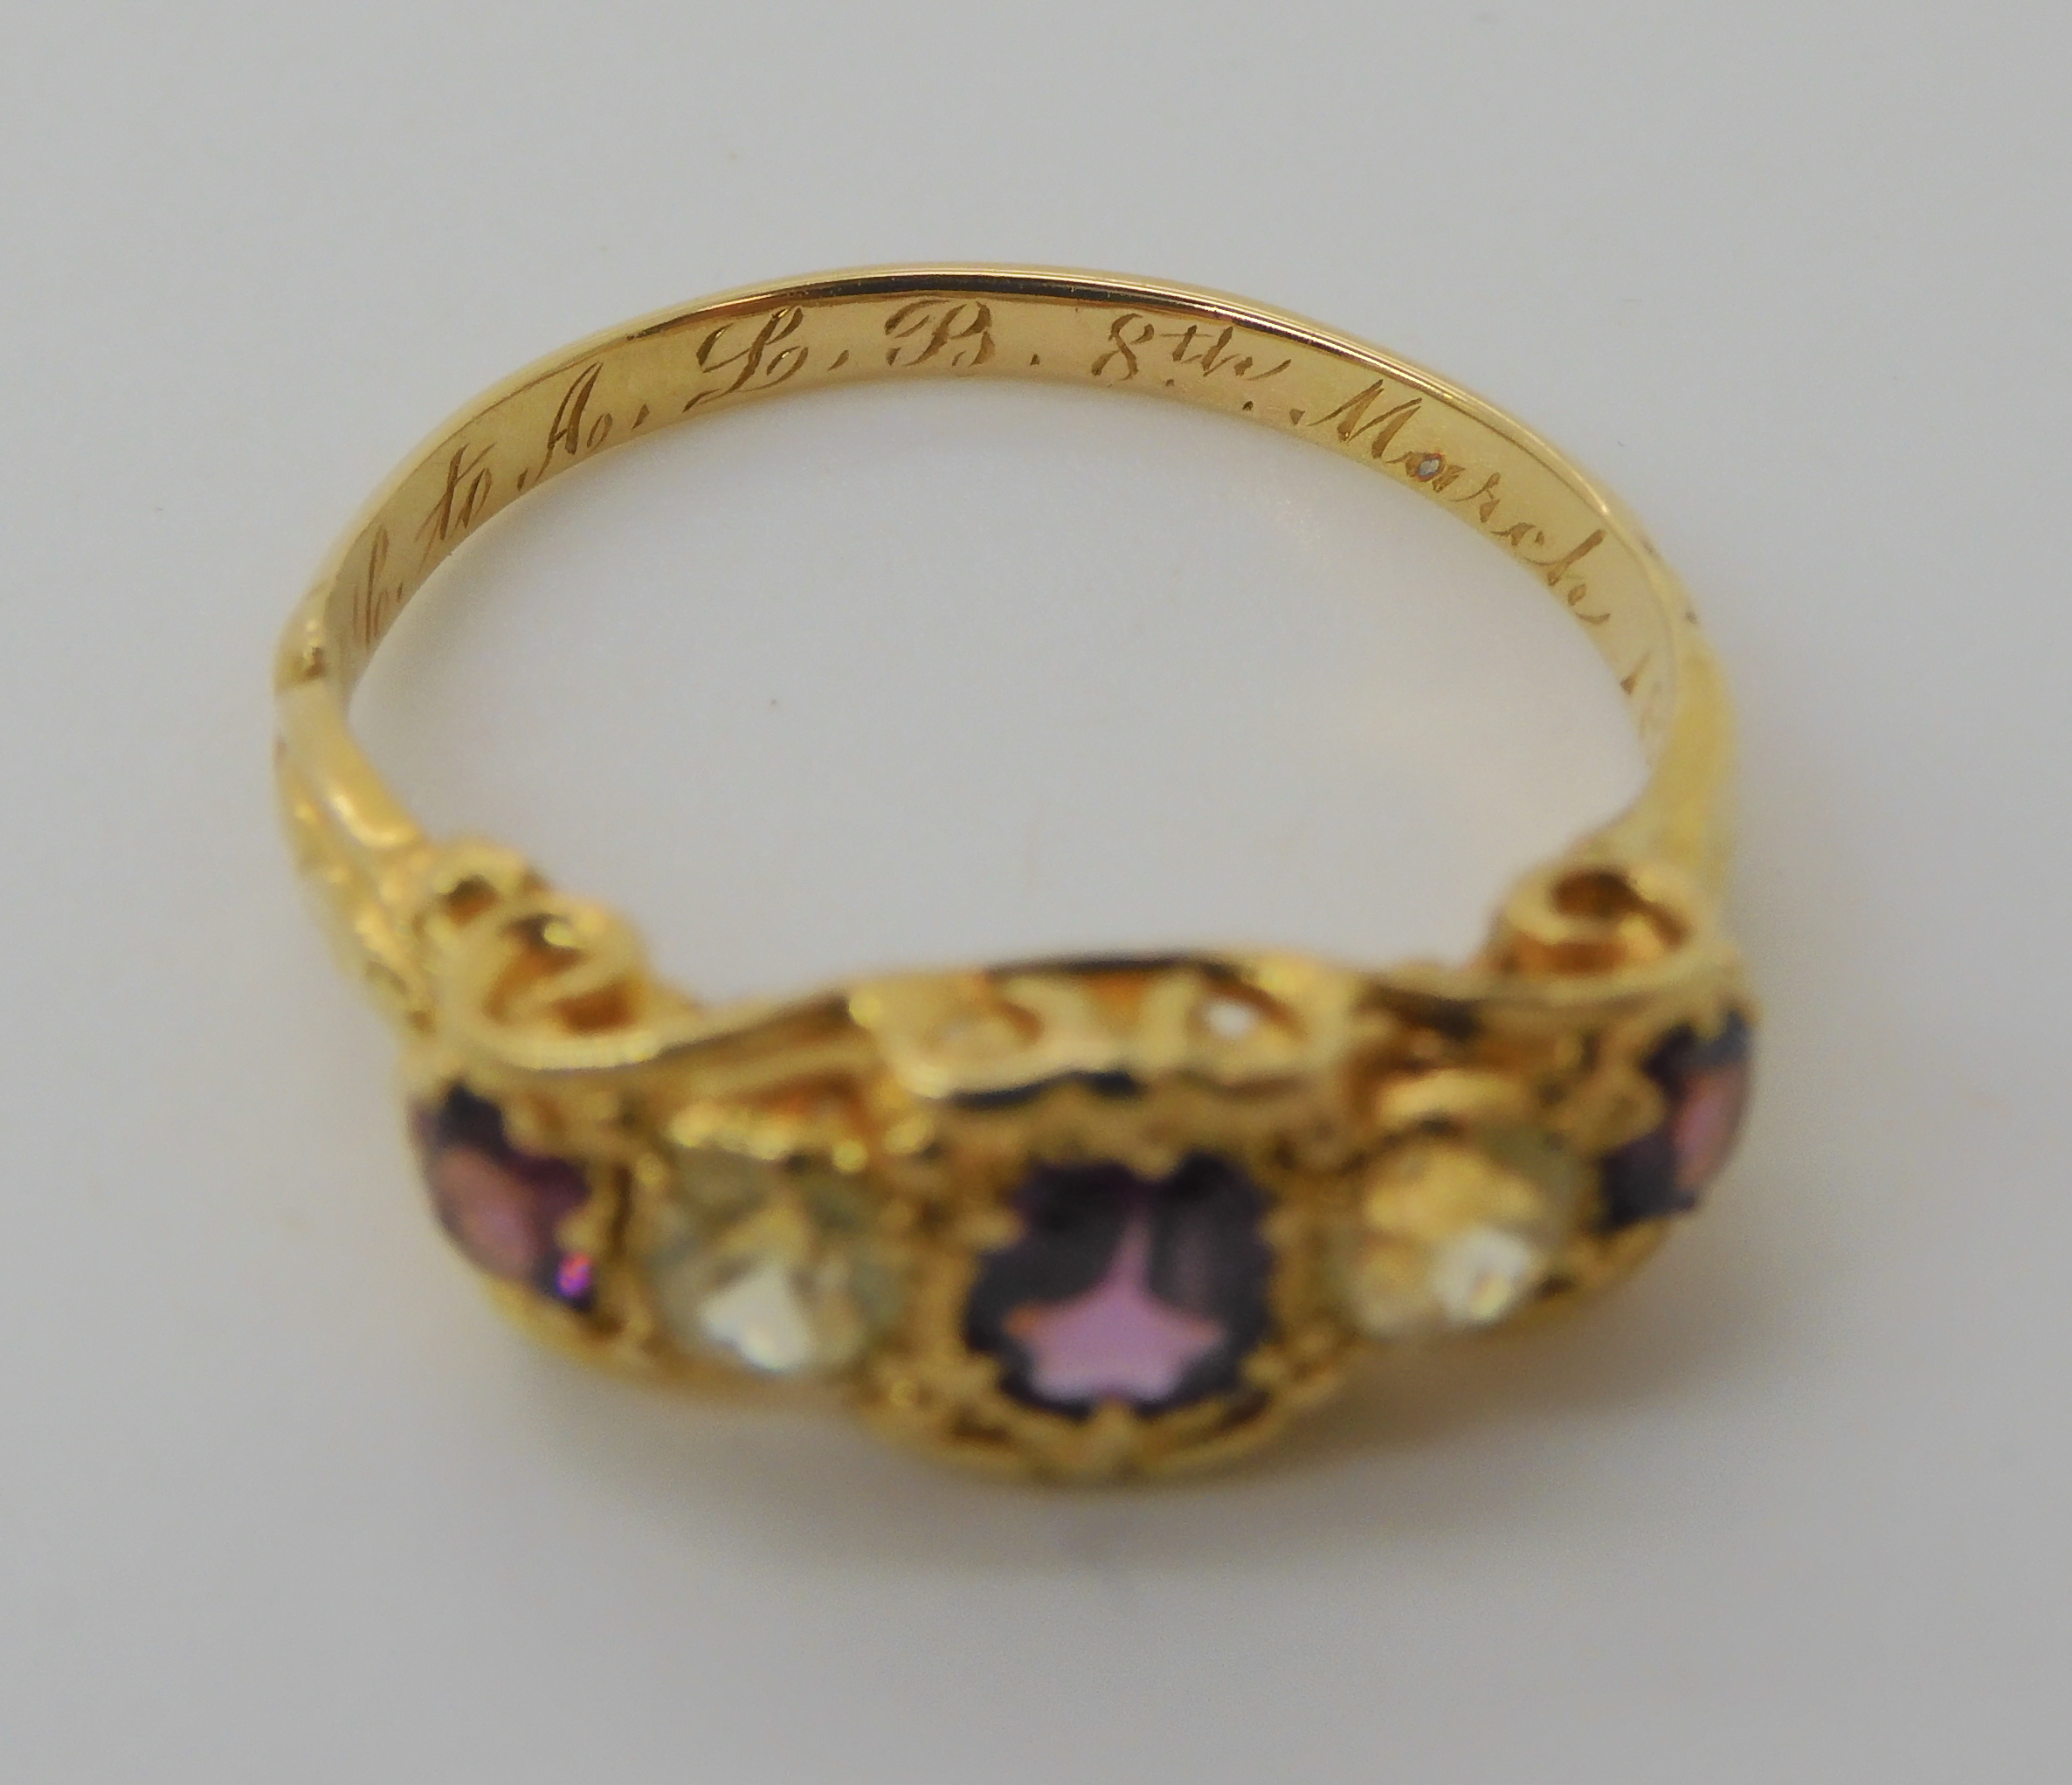 A VICTORIAN GEM SET RING inscribed and dated 1861, set with garnets and pale green gems, finger size - Image 6 of 7